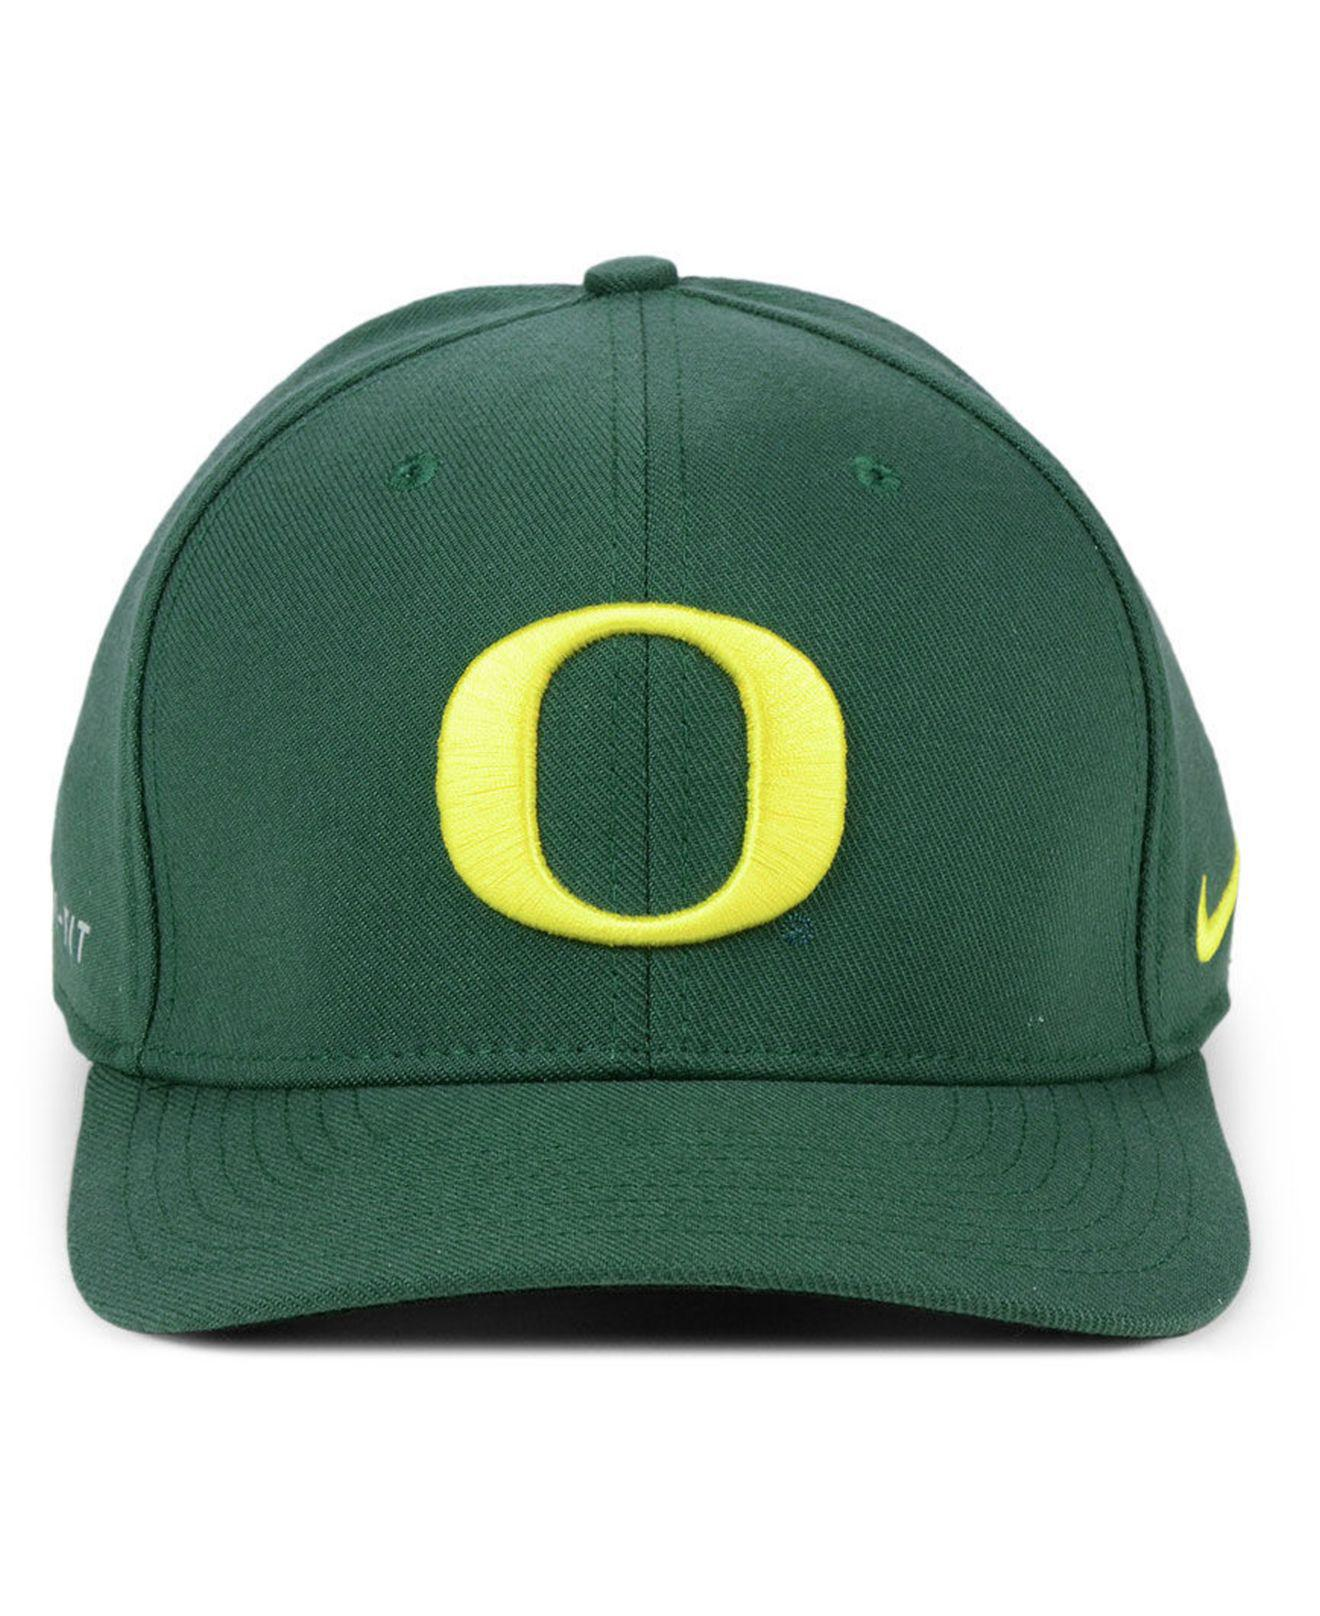 new style bbca1 24d17 Lyst - Nike Oregon Ducks Col Dri-fit Wool Cap in Green for Men